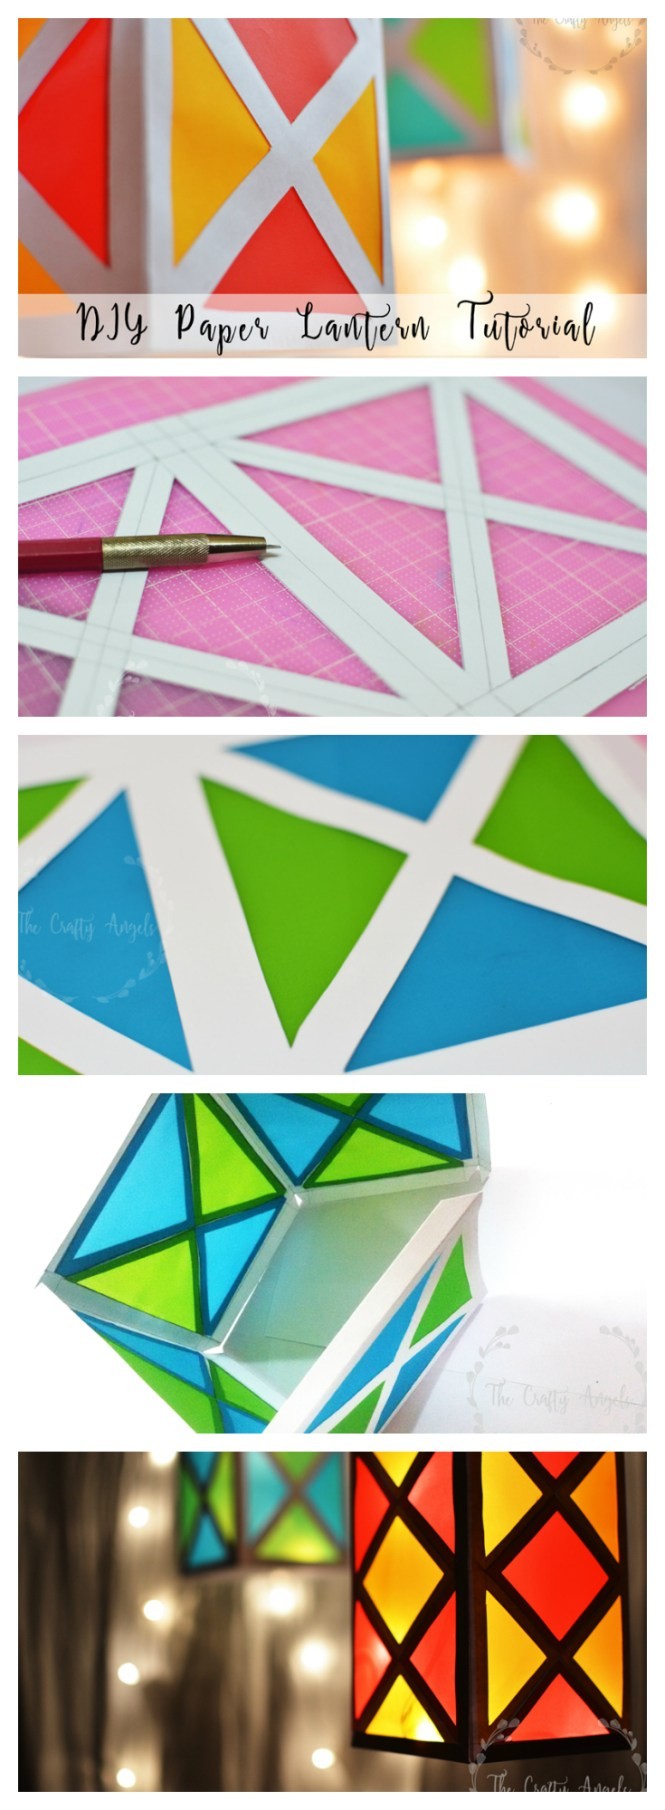 Colorful paper lantern tutorial the crafty angels for Paper lantern tutorial